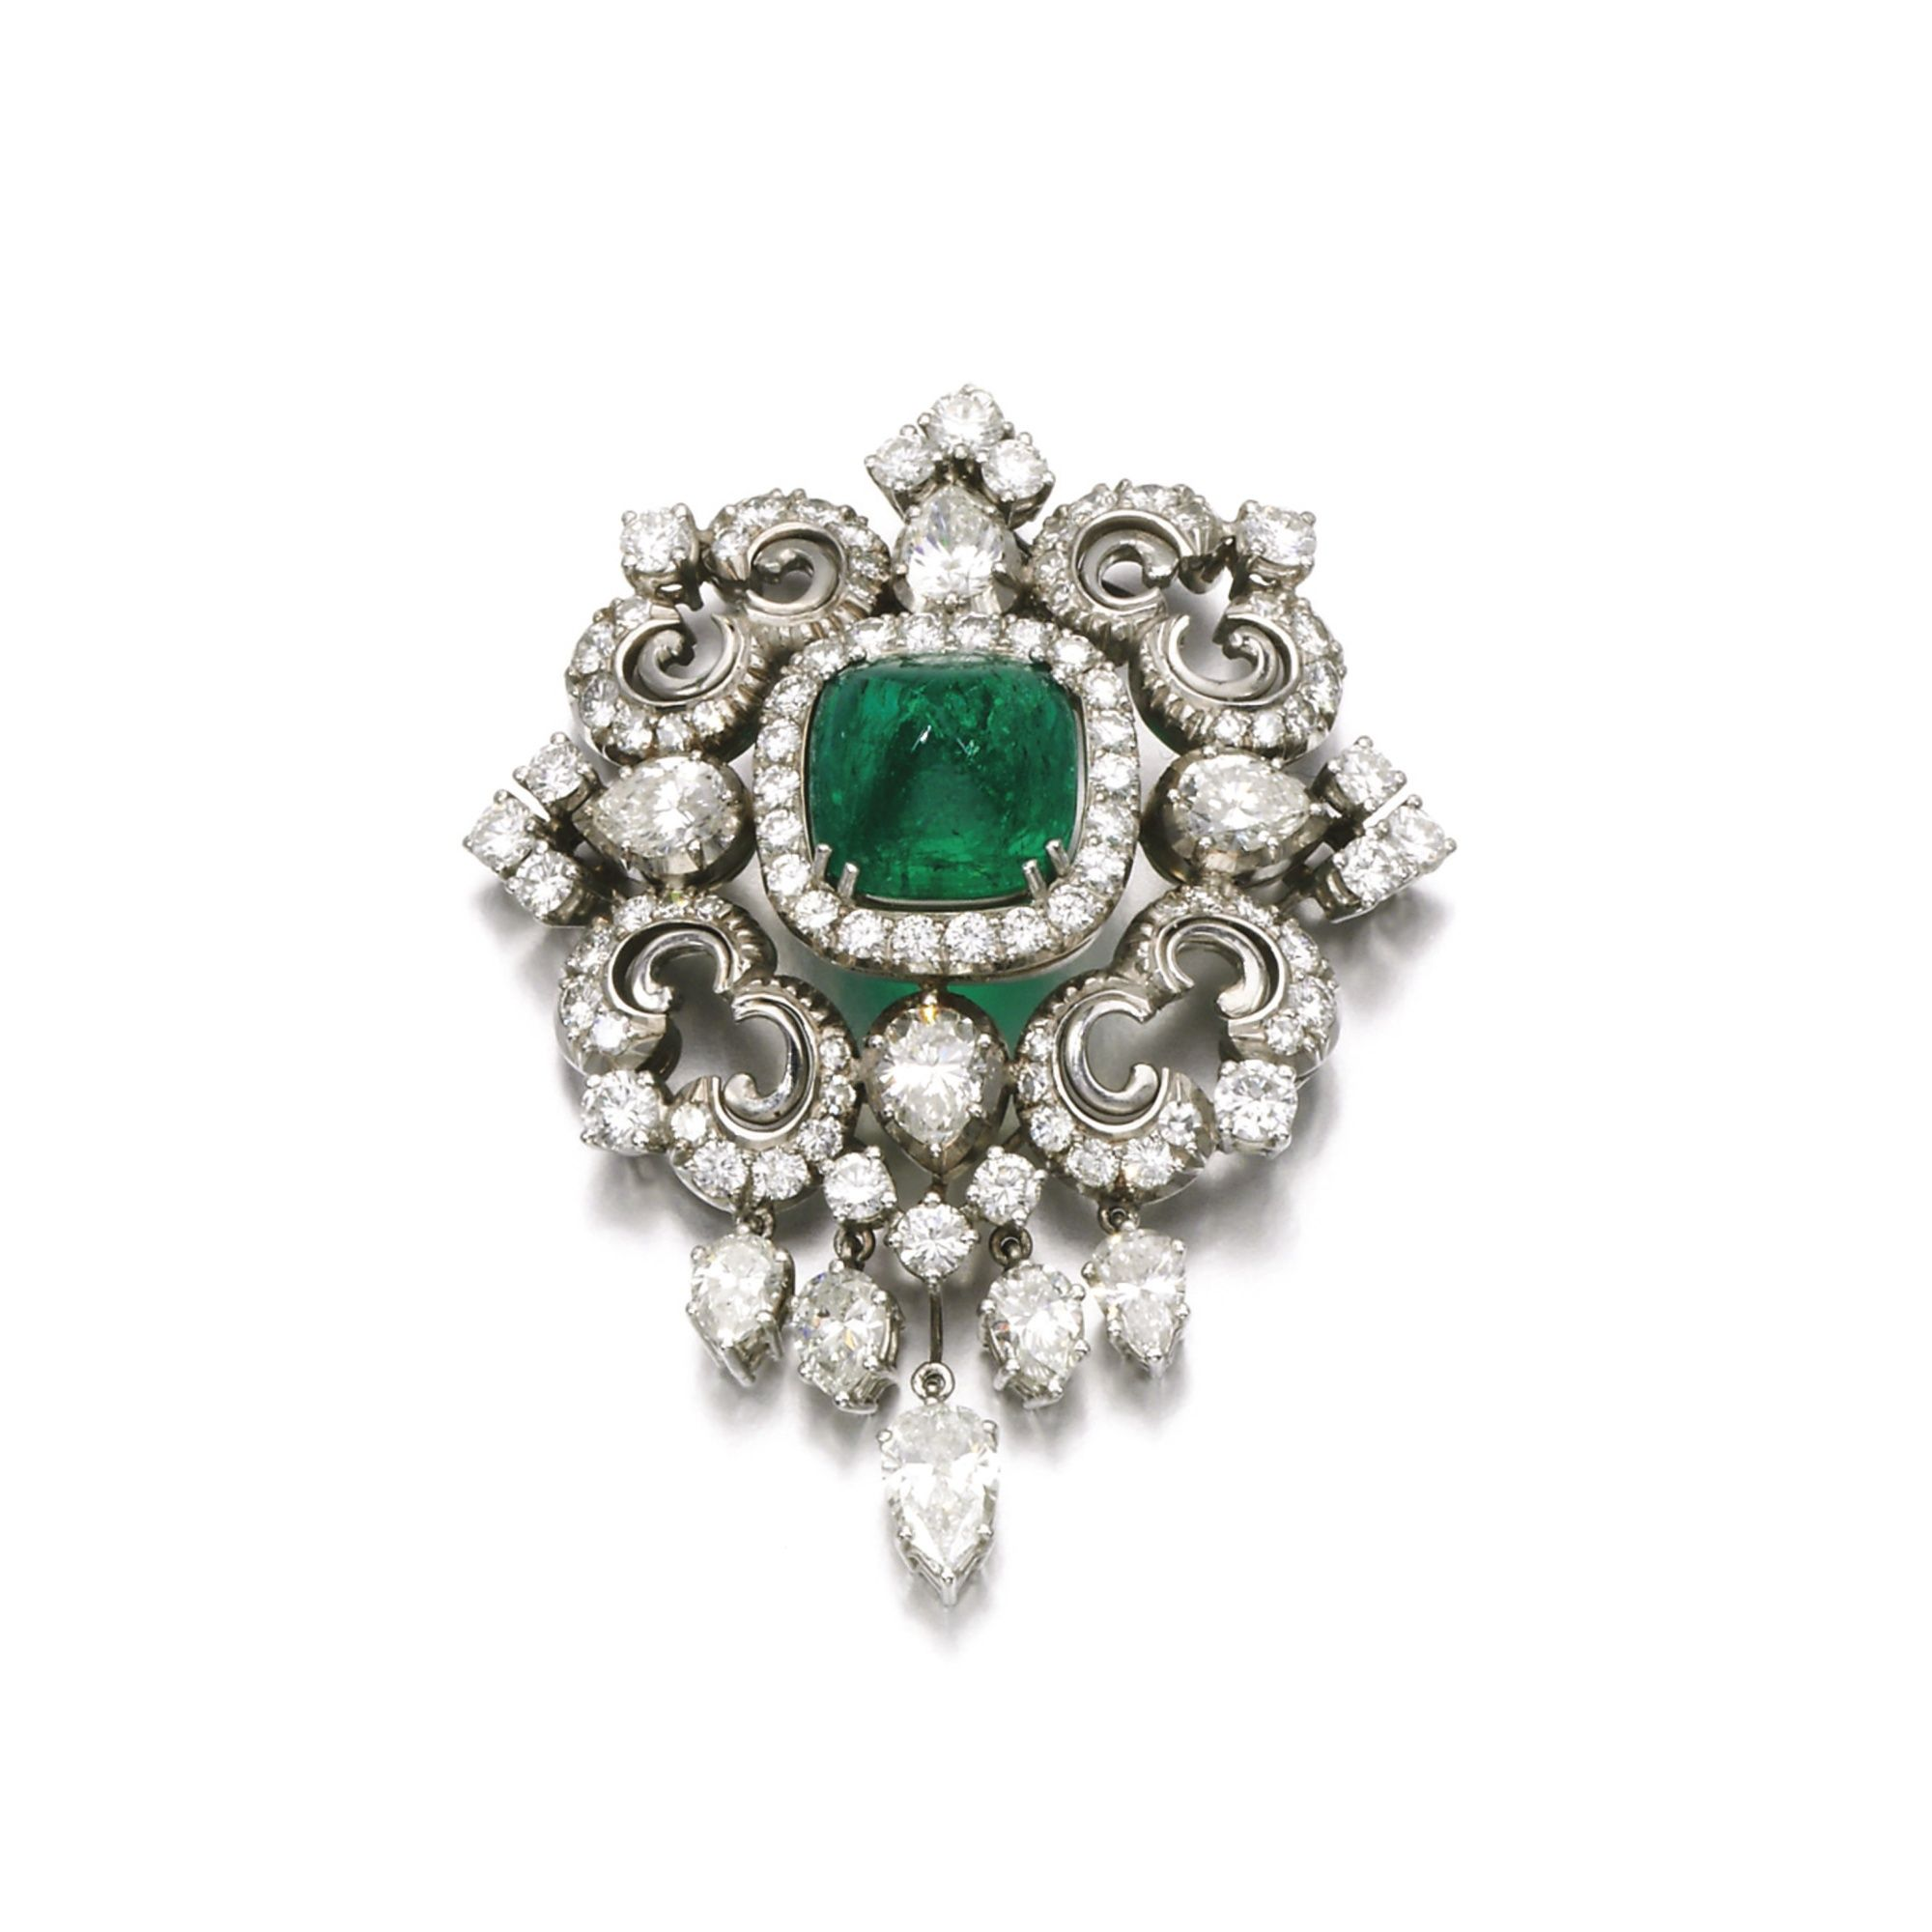 Emerald and diamond broochpendant of scroll design set with a